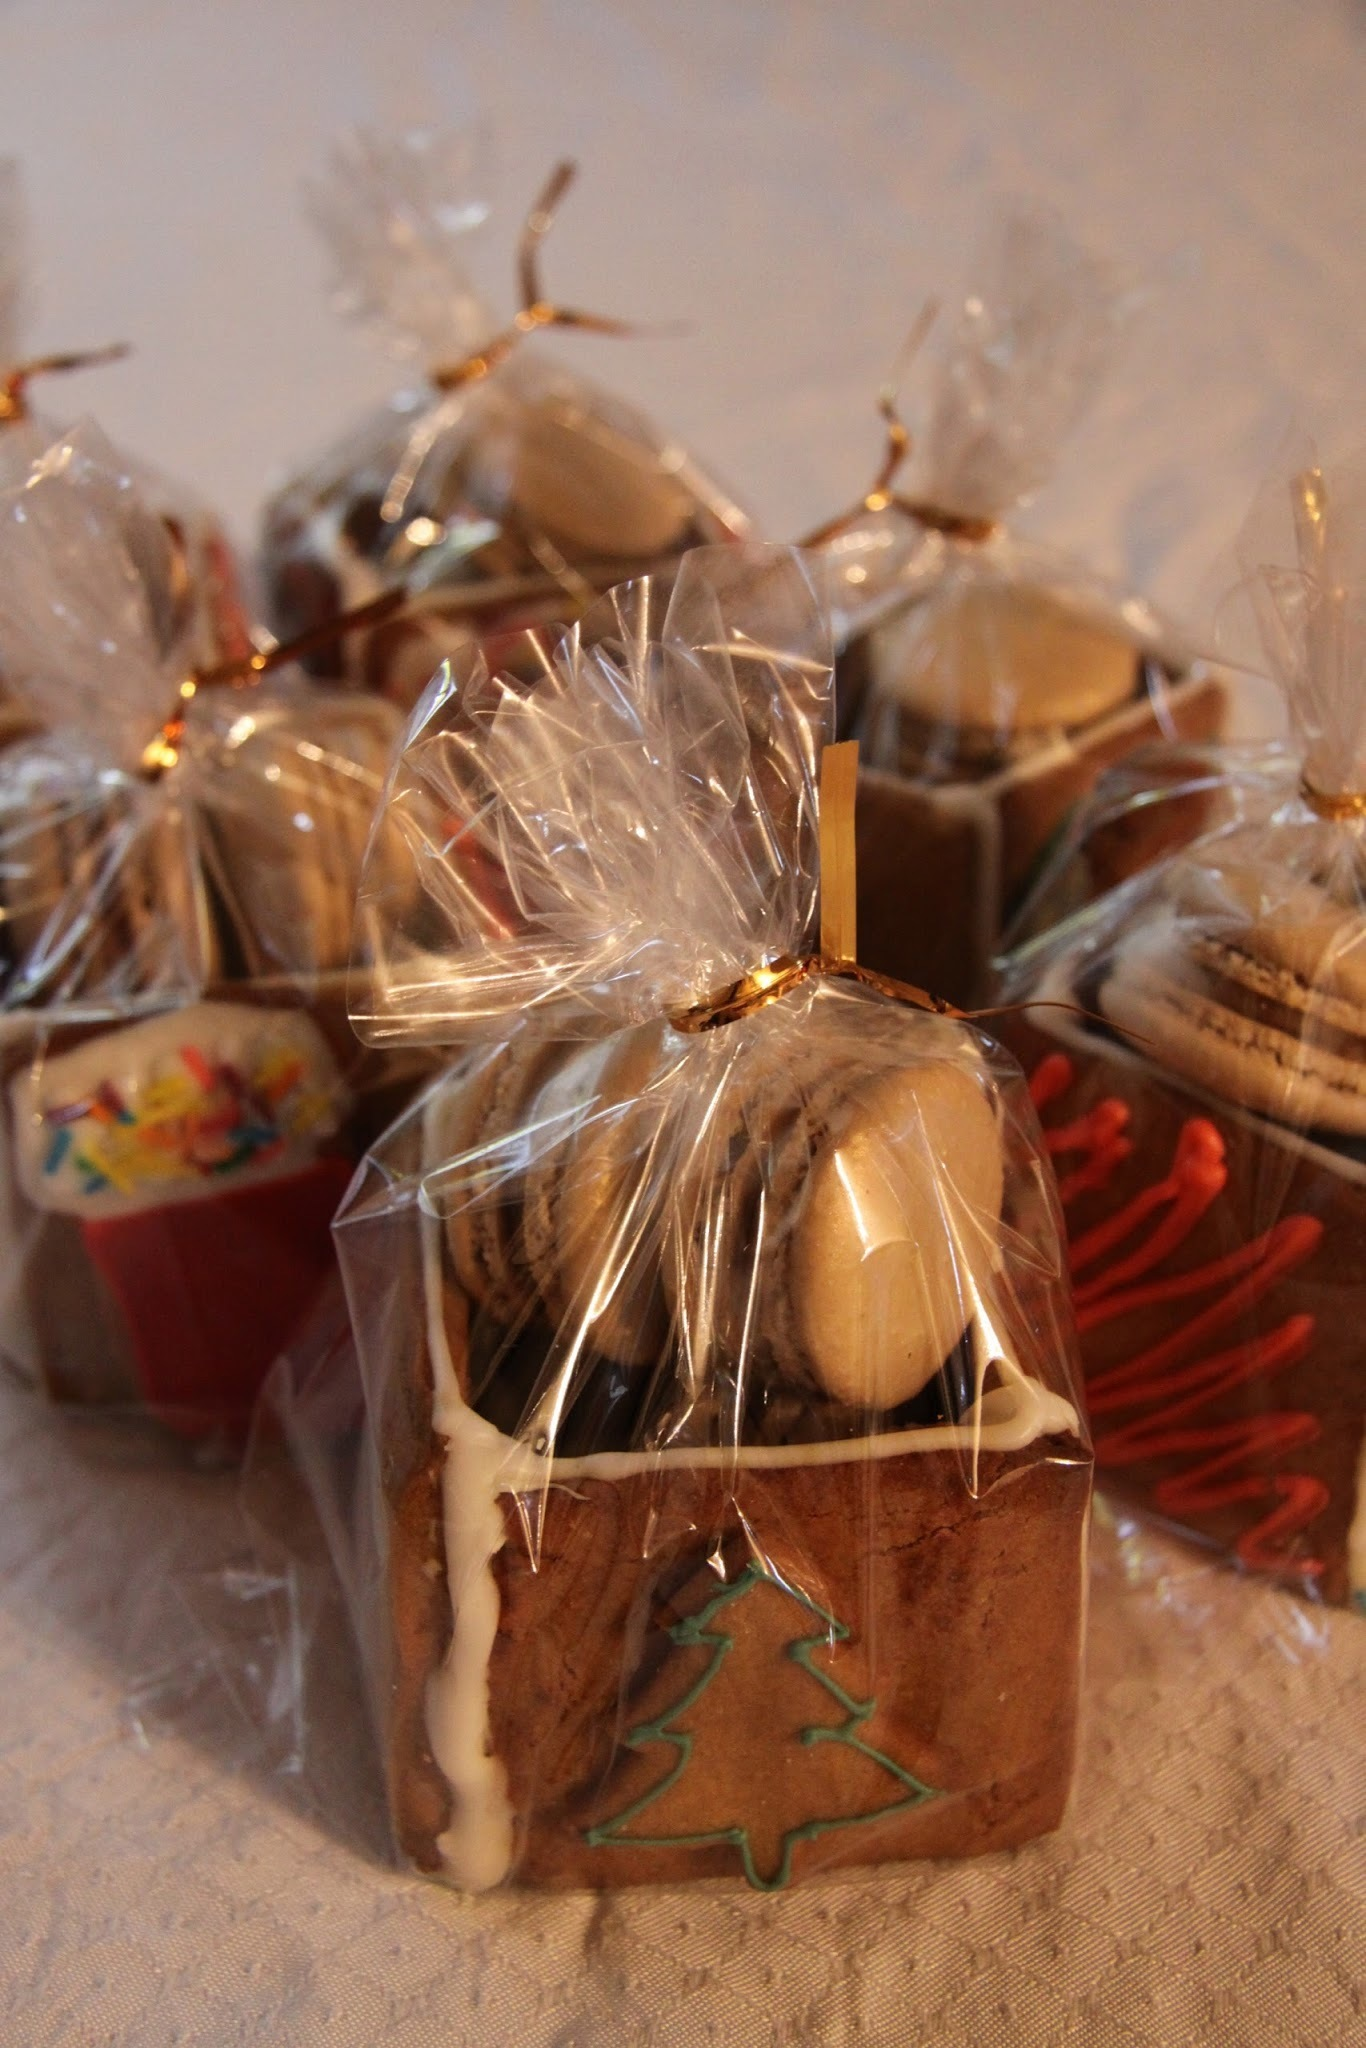 Christmas Gifts: Gingerbread boxes with macarons